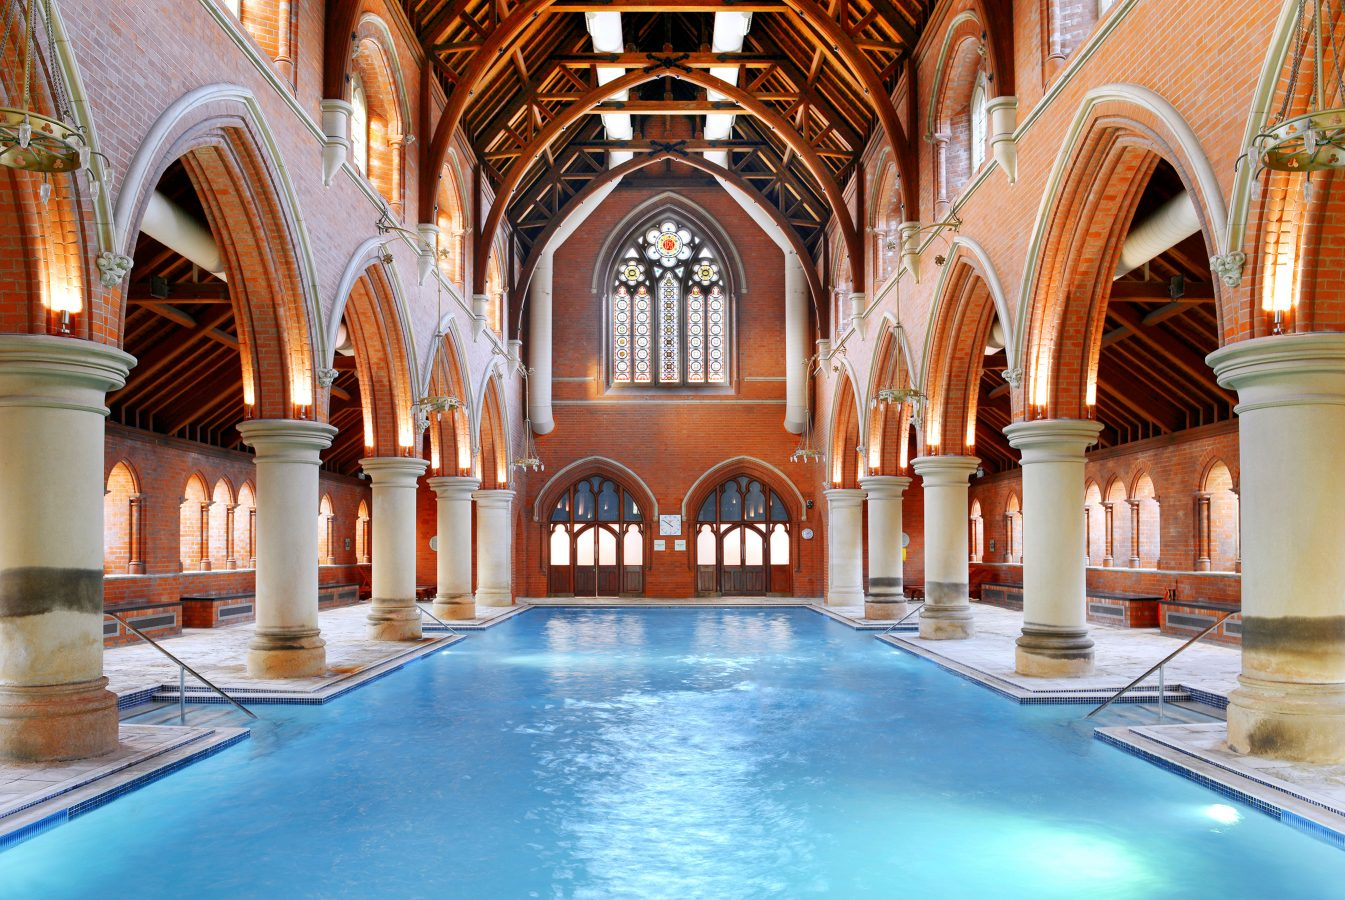 The Virgin Active Repton Park swimming pool in a former mental asylum